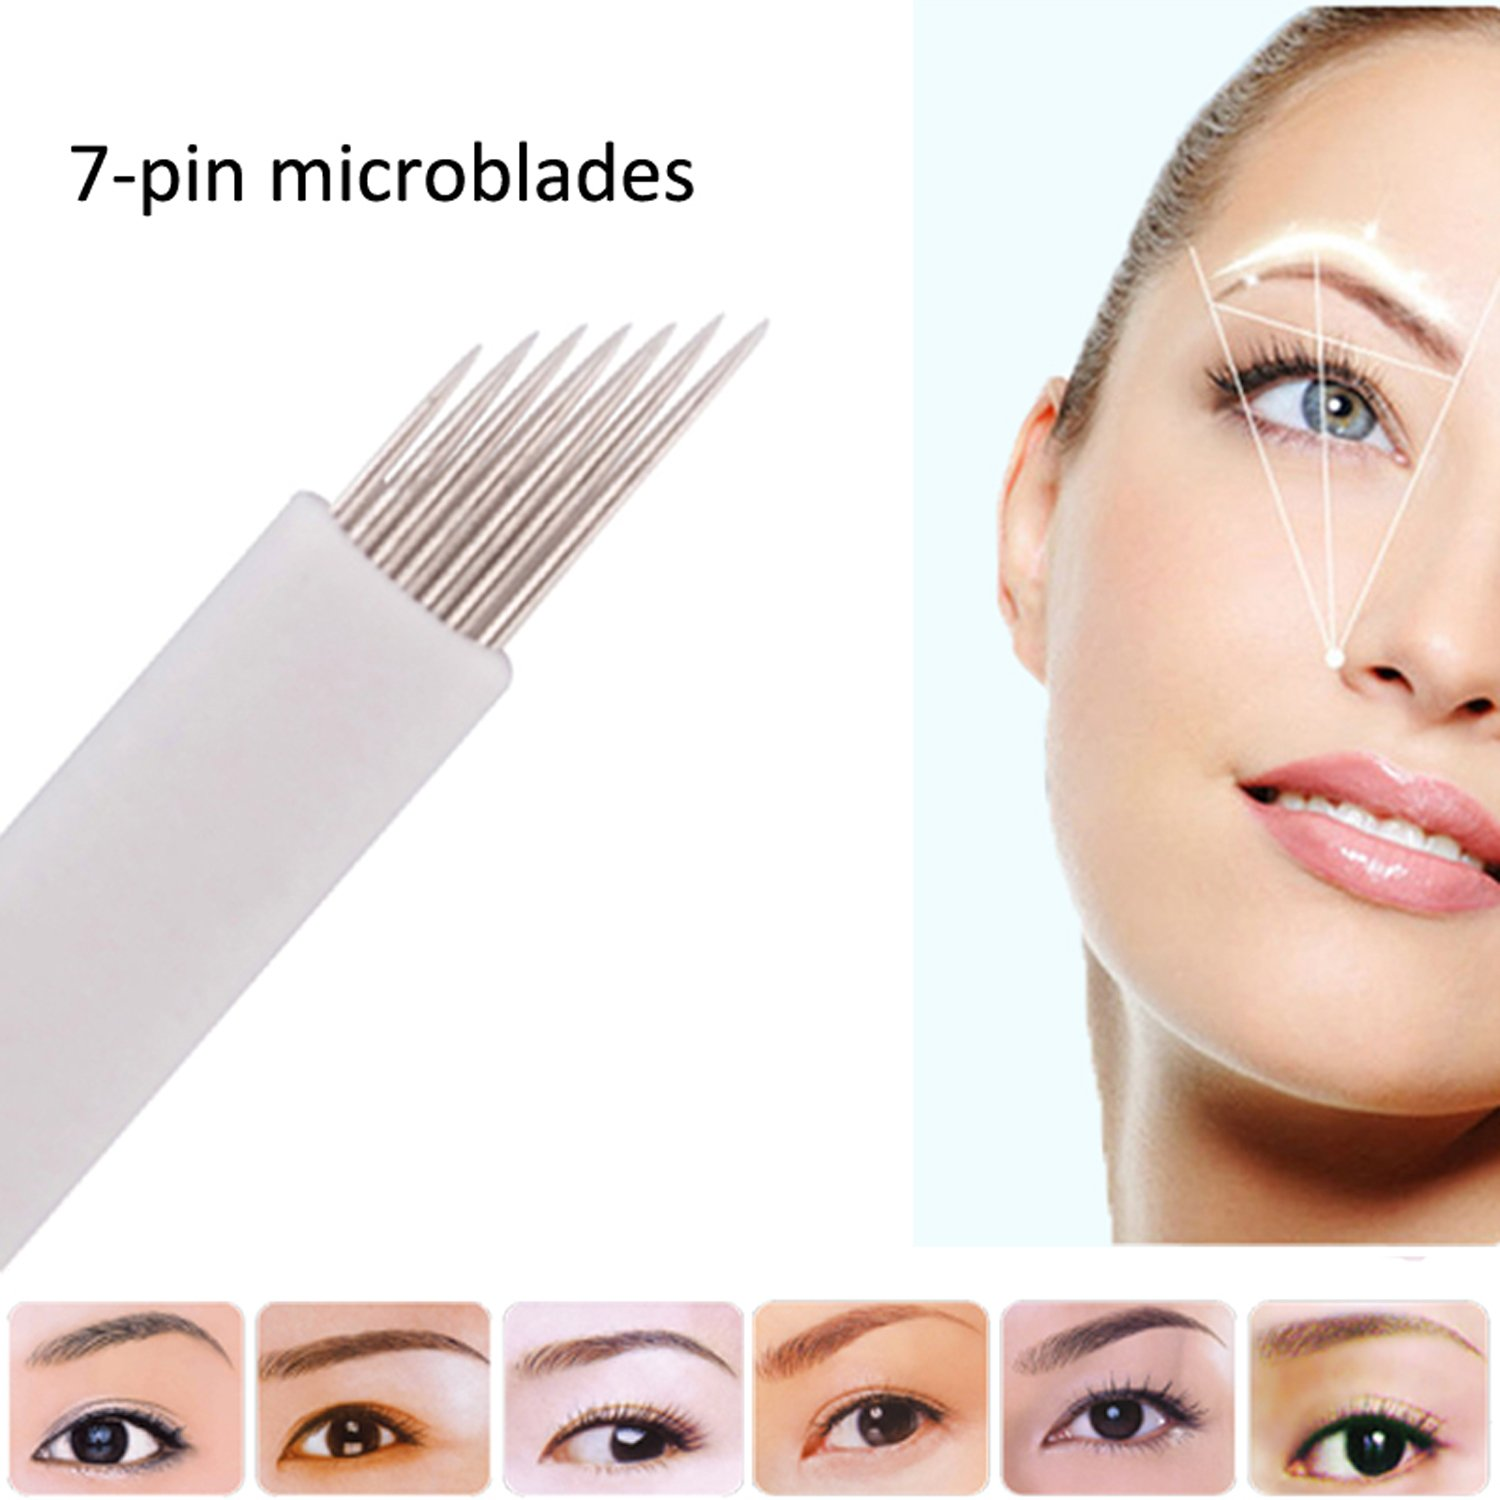 Microblading Needles e-Life Eyebrow Disposable Micro Blades Professional Eyebrow Microblading Tattoo Needles/Manual Microblades for Eyebrow Permanent Tattoo Makeup, 50PCS/Pack (12-pin) Real Vision